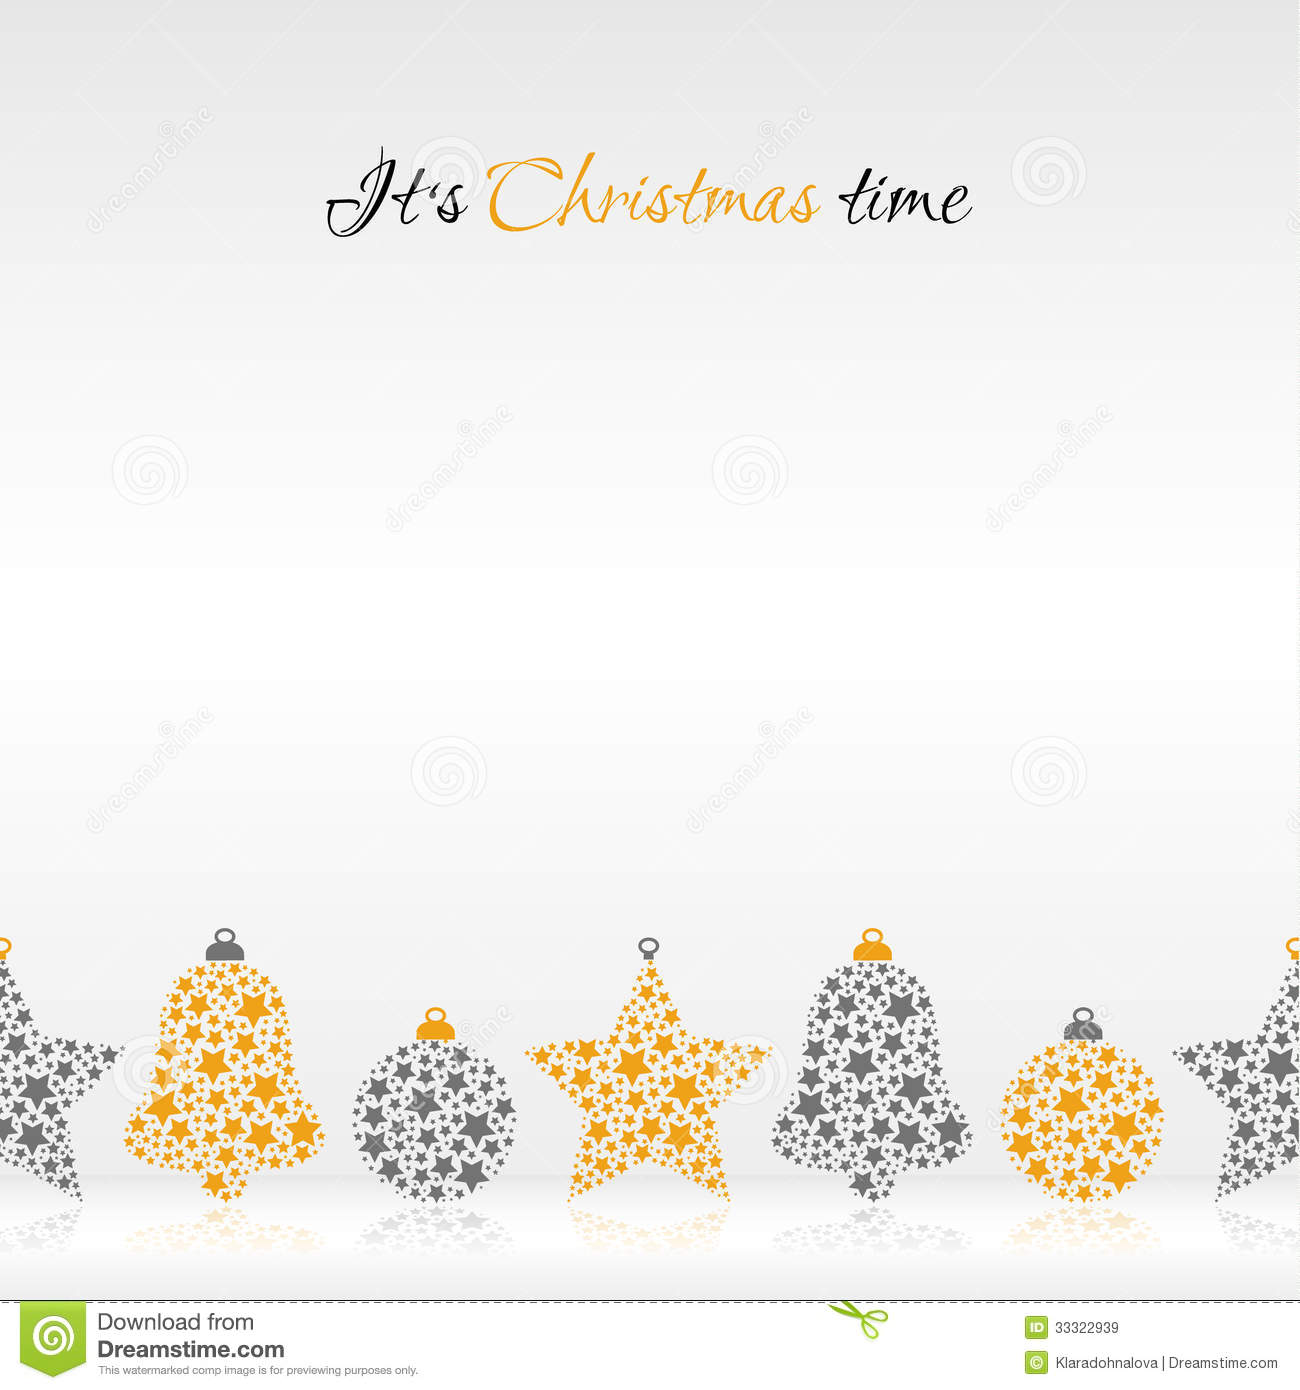 Its christmas time illustration royalty free stock images for A text decoration